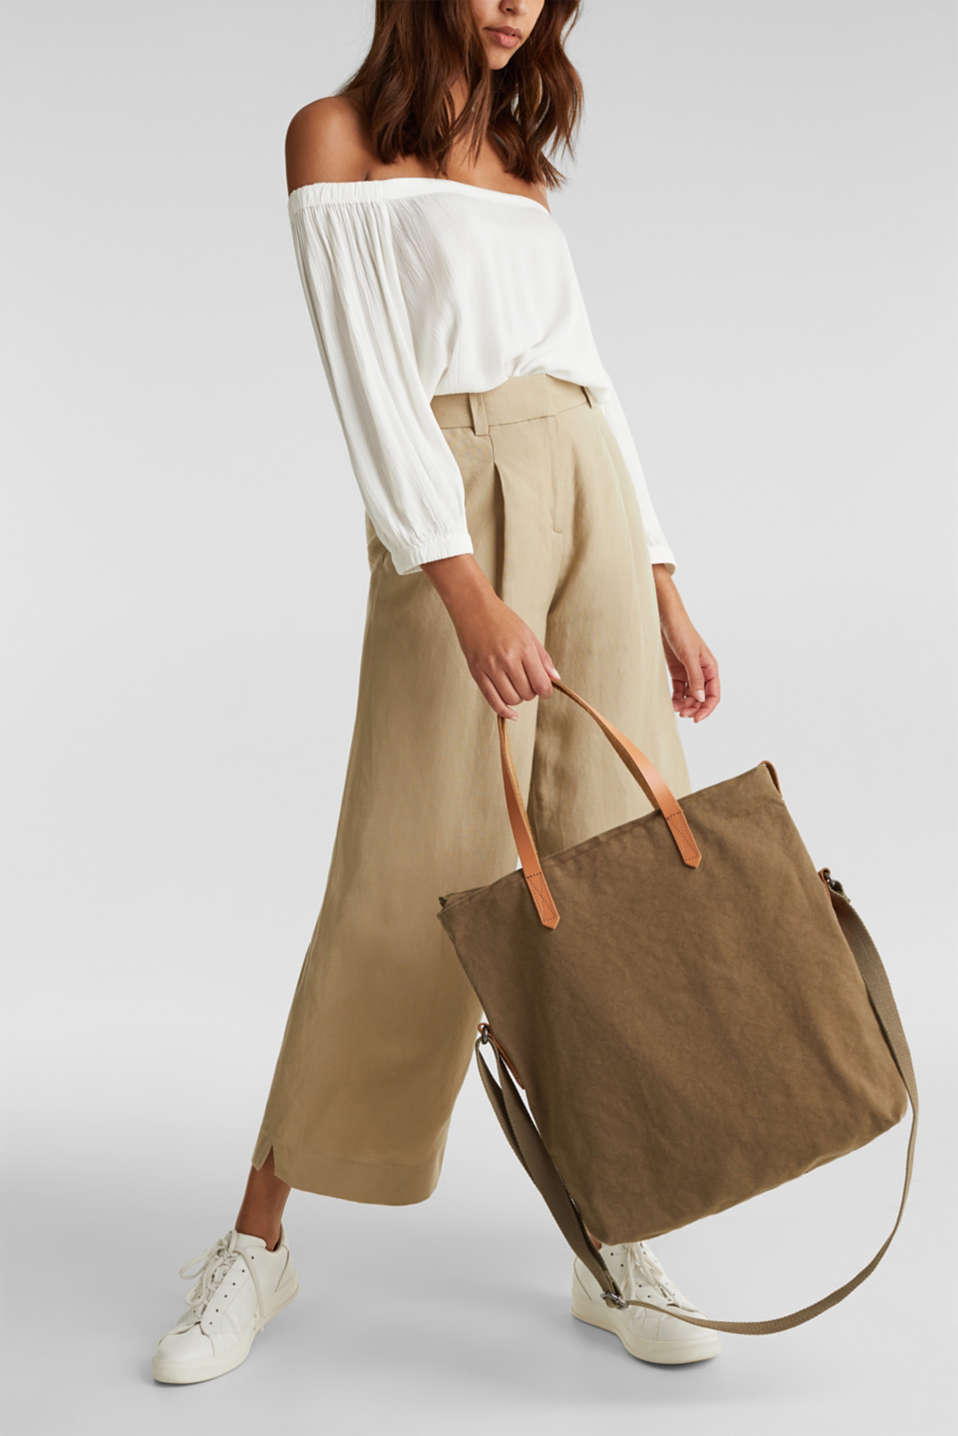 Adjustable canvas tote with leather details, LIGHT KHAKI, detail image number 1